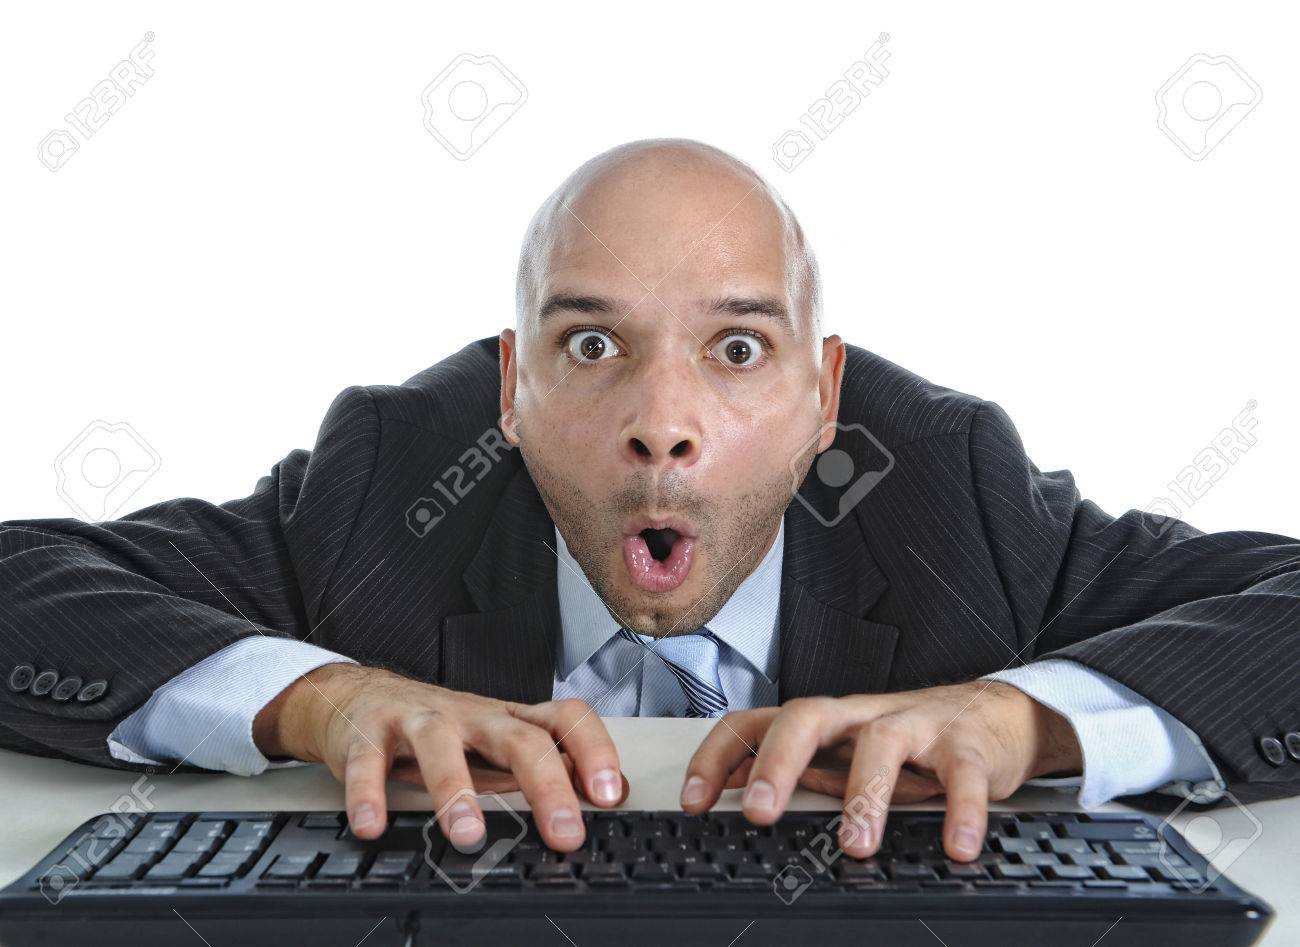 Stock Photo - young businessman typing on computer keyboard with funny face  expression on watching porn online and internet chat